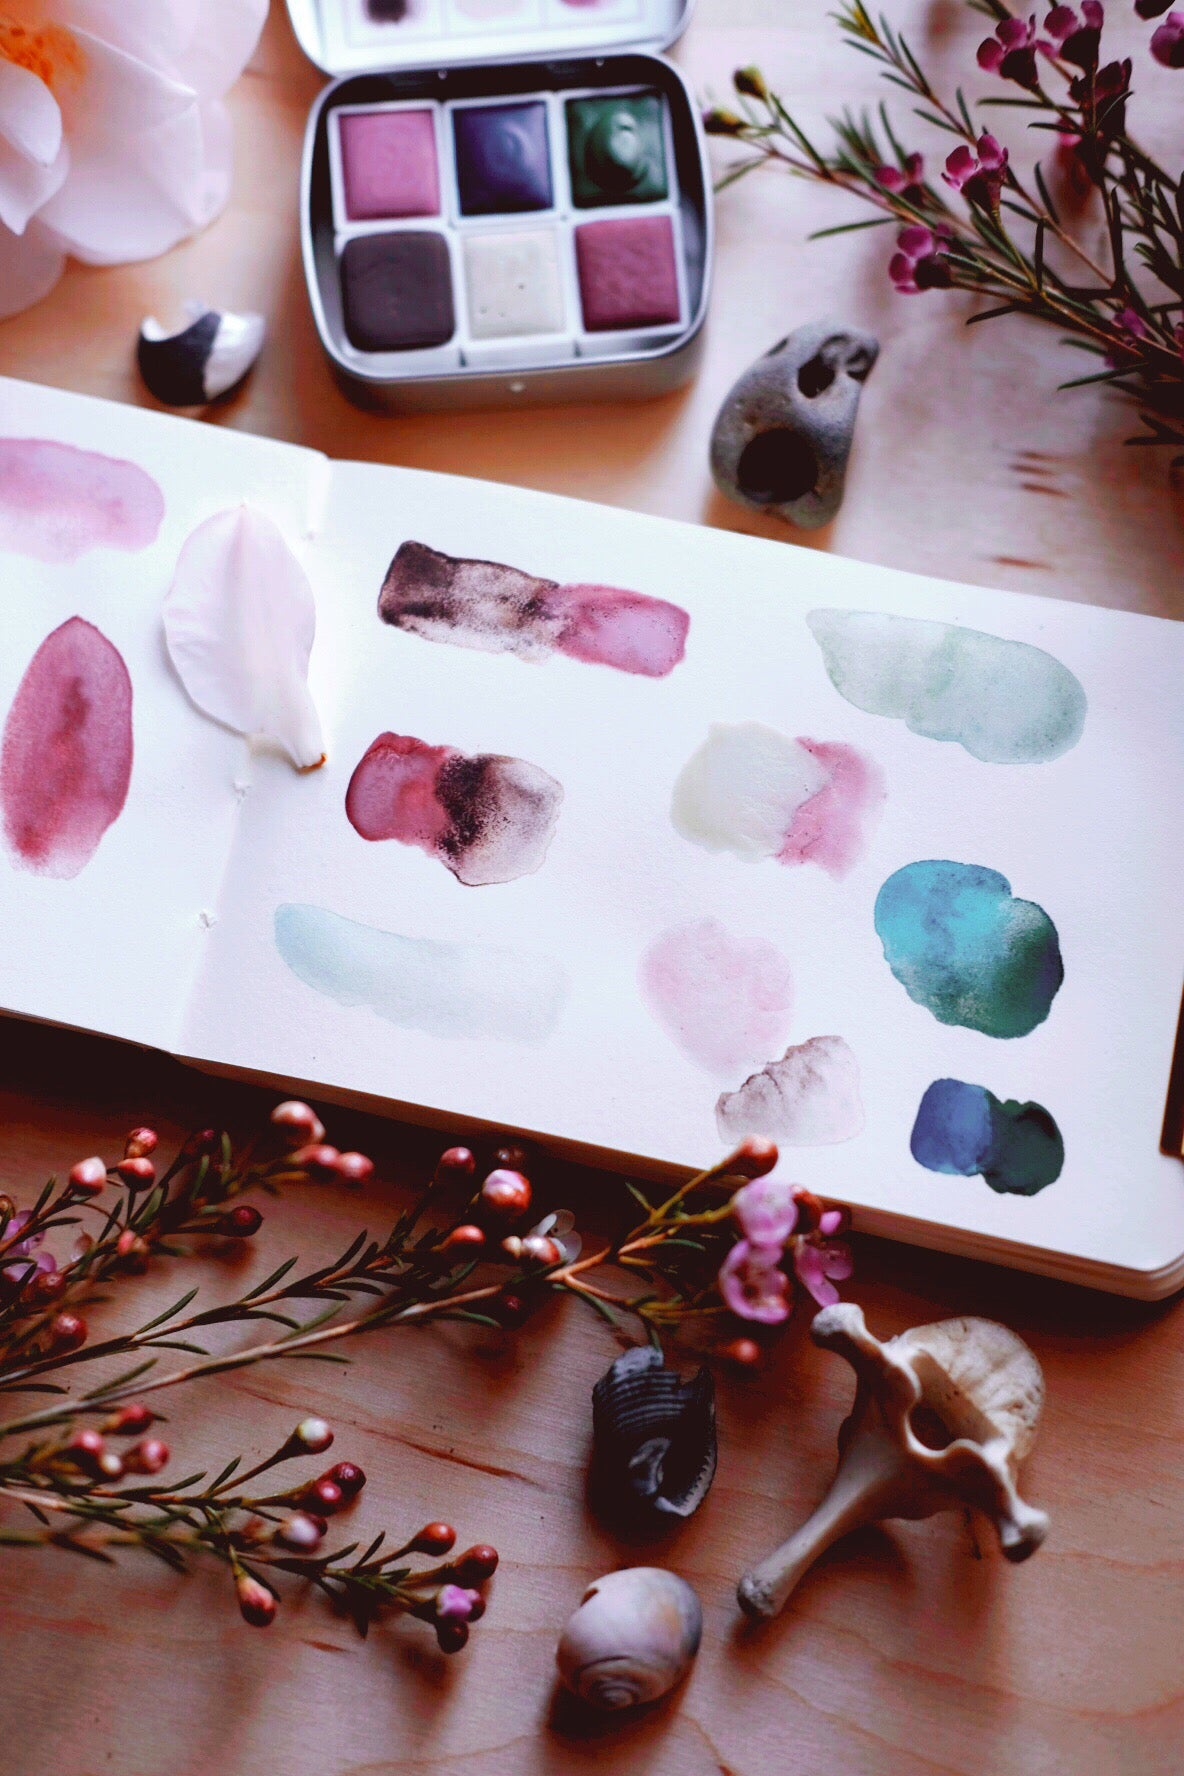 RESERVE for Carole + Seashell Floret - Limited edition Gemstone Mineral watercolor palette